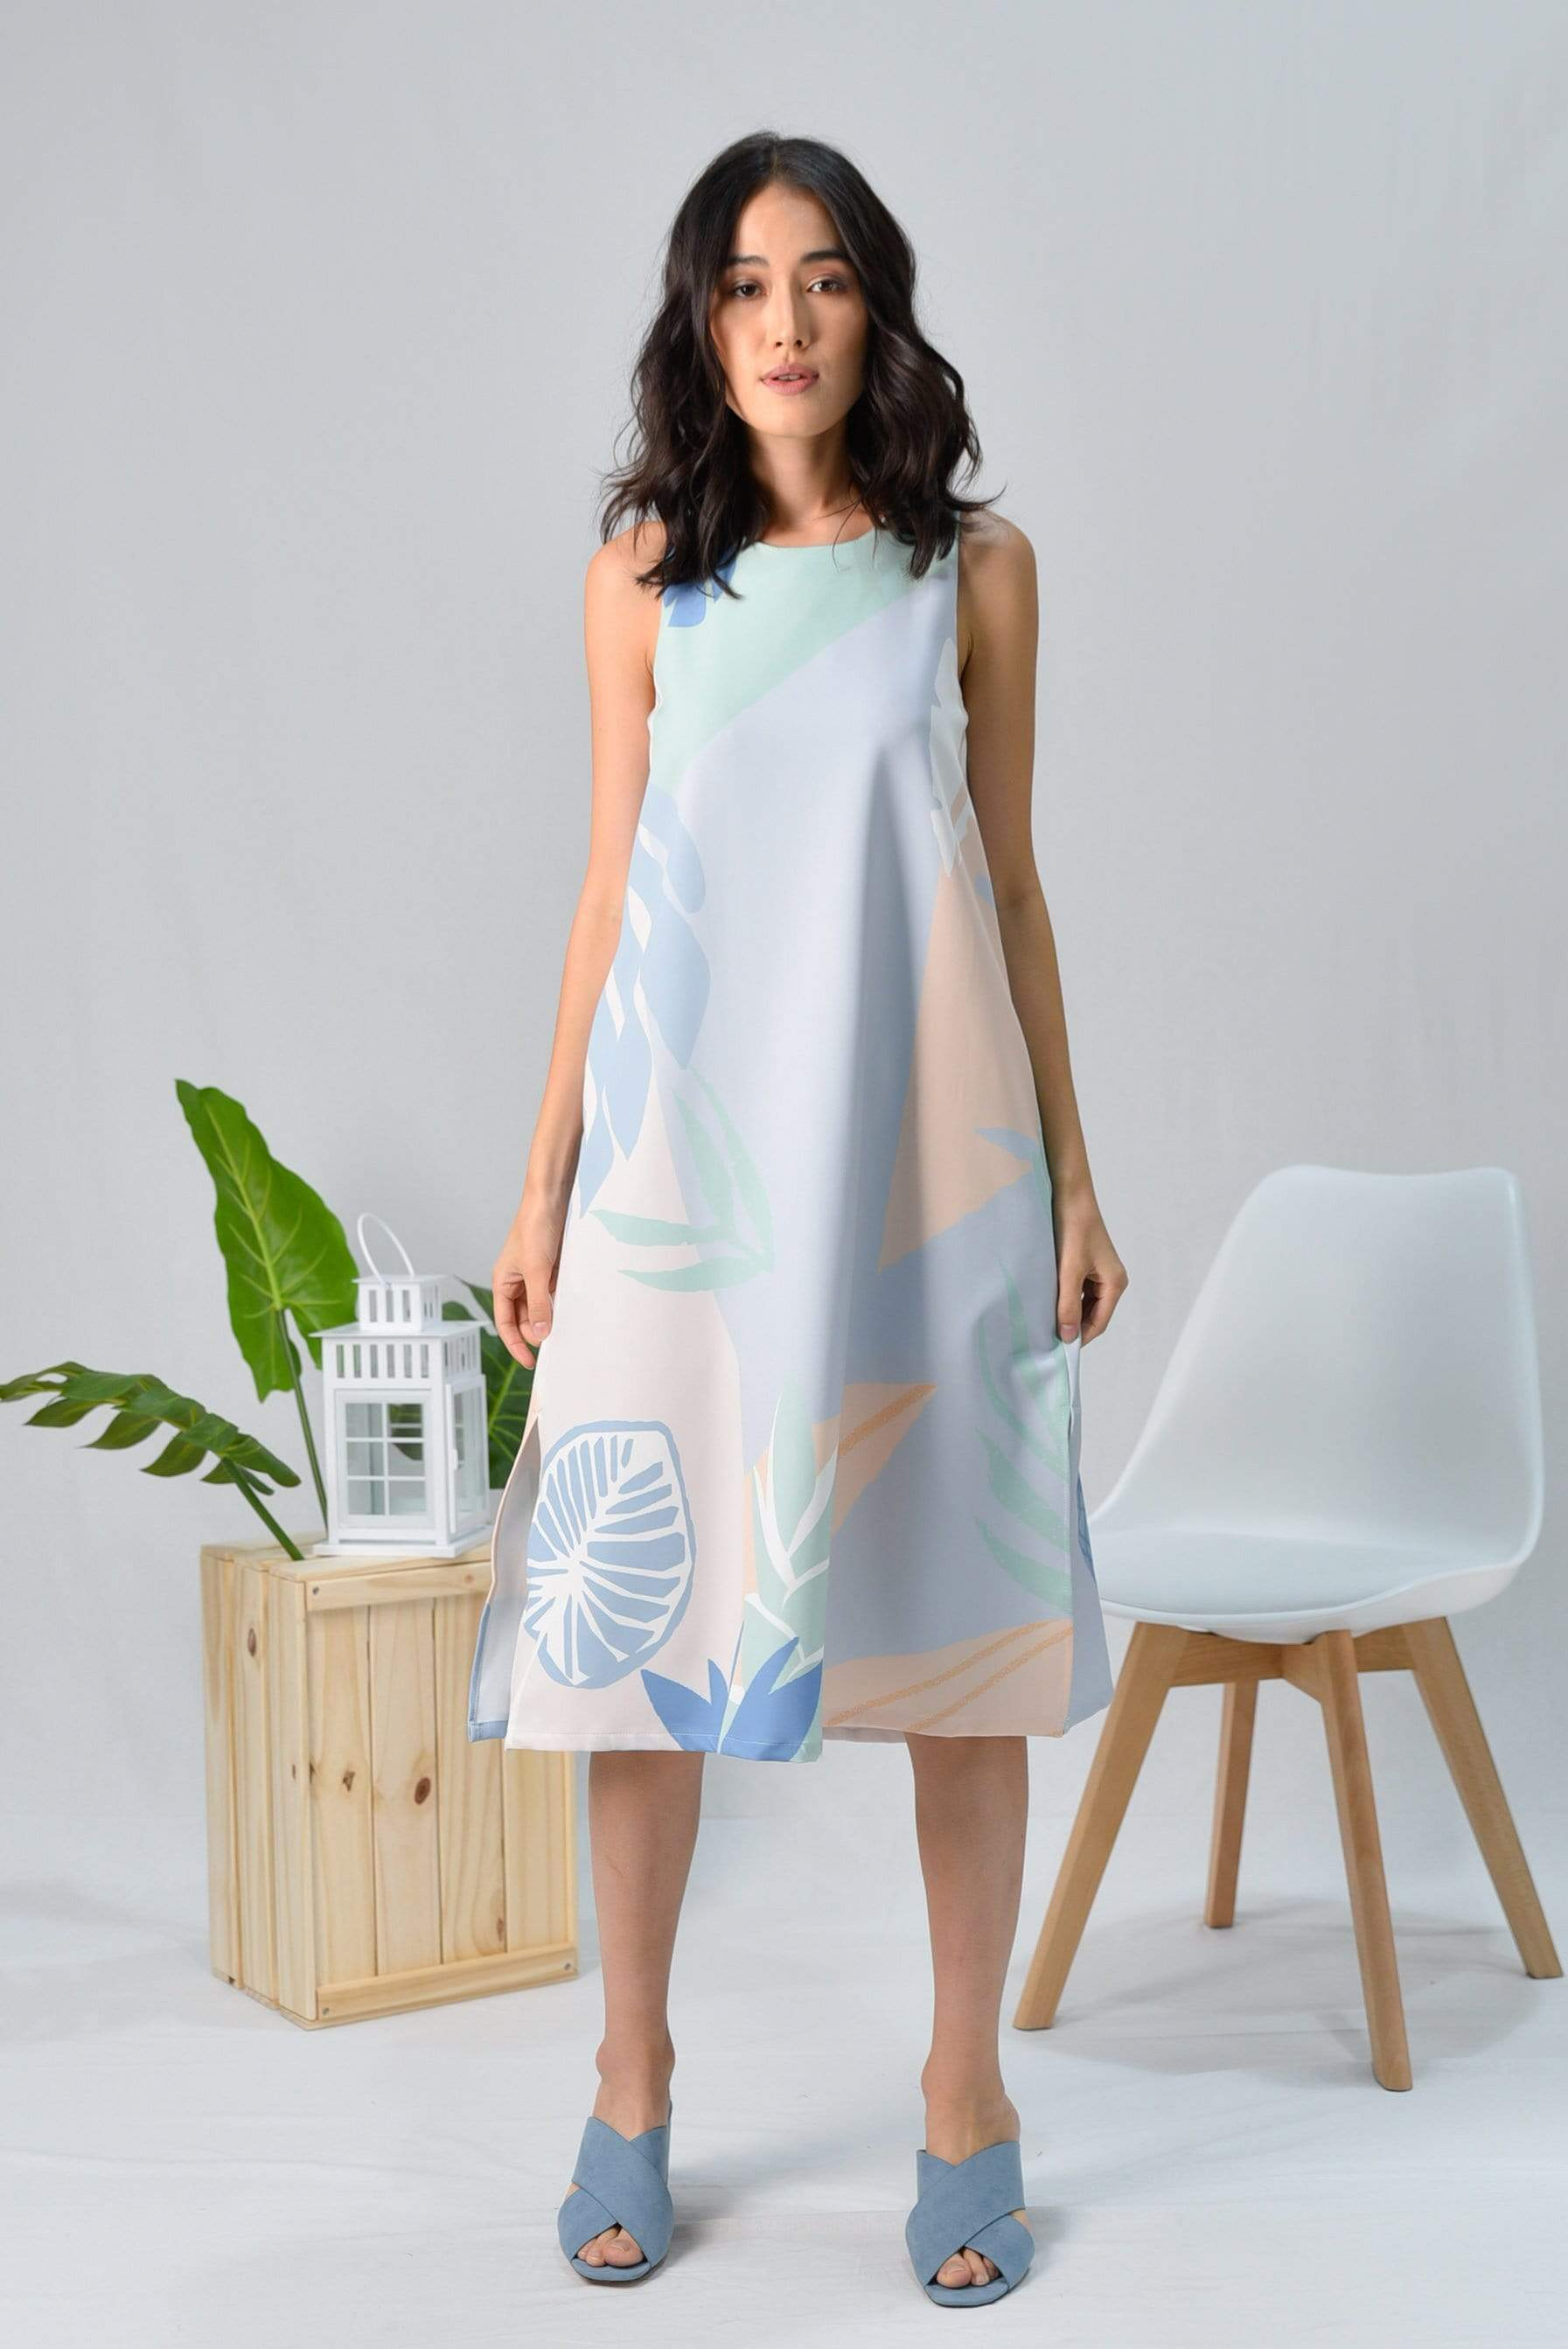 AWE Dresses TROPICAL SLIT A-LINE MIDI DRESS IN SANTORINI